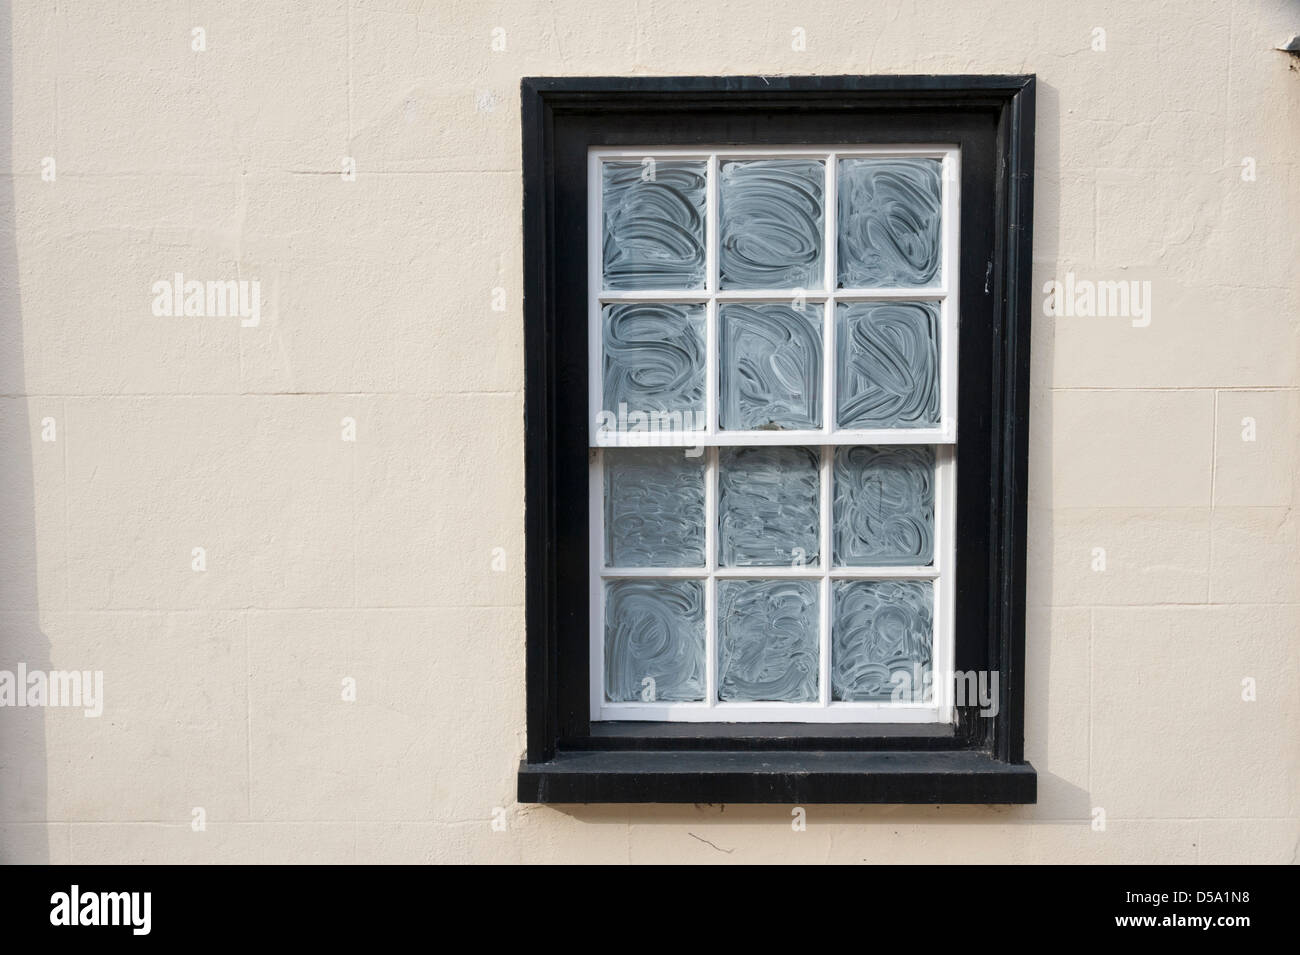 An old sash window with whitewash on the panes - Stock Image